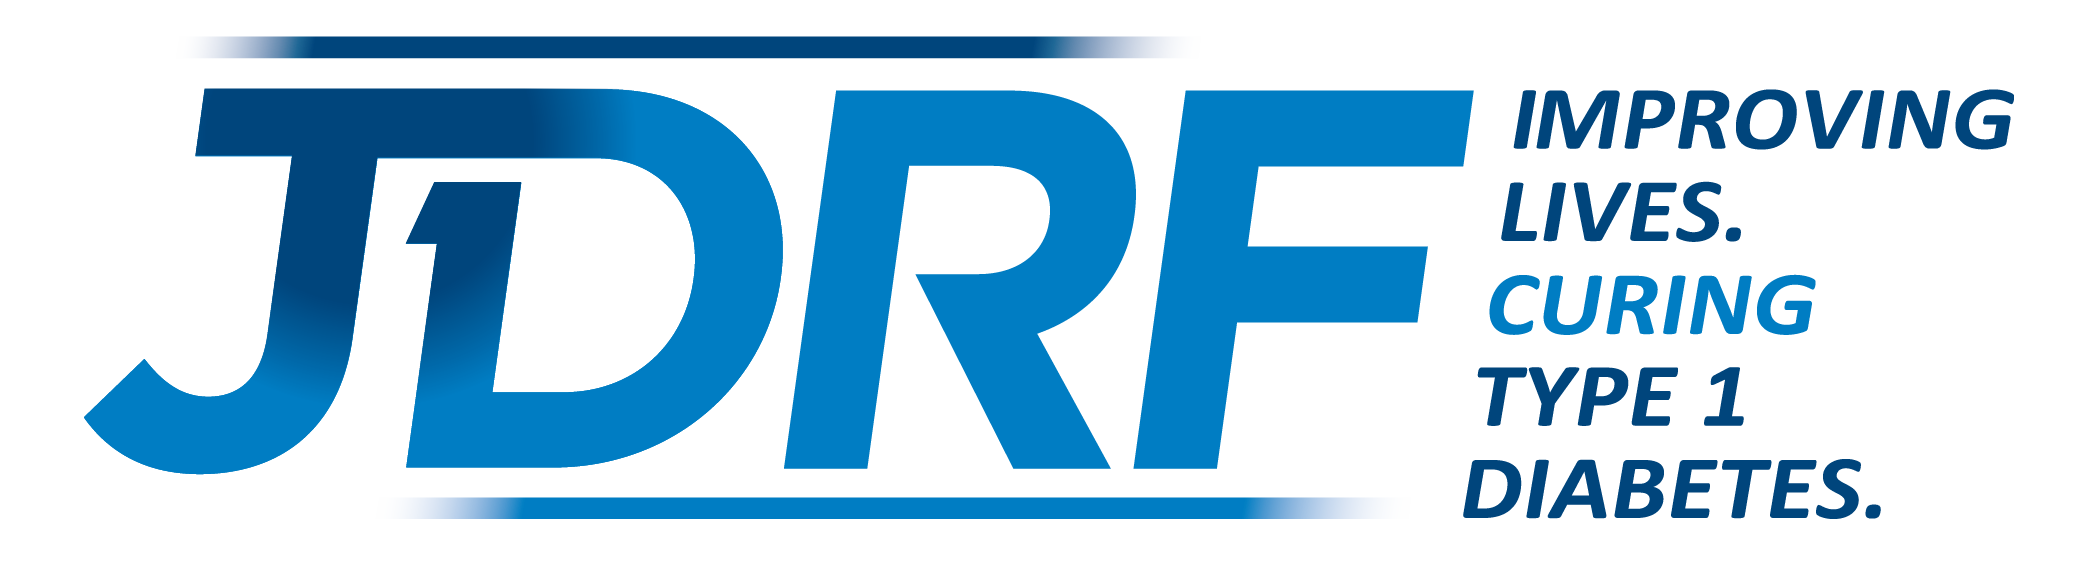 JDRF - Help Mid Atlantic Industrial Equipment fight diabetes